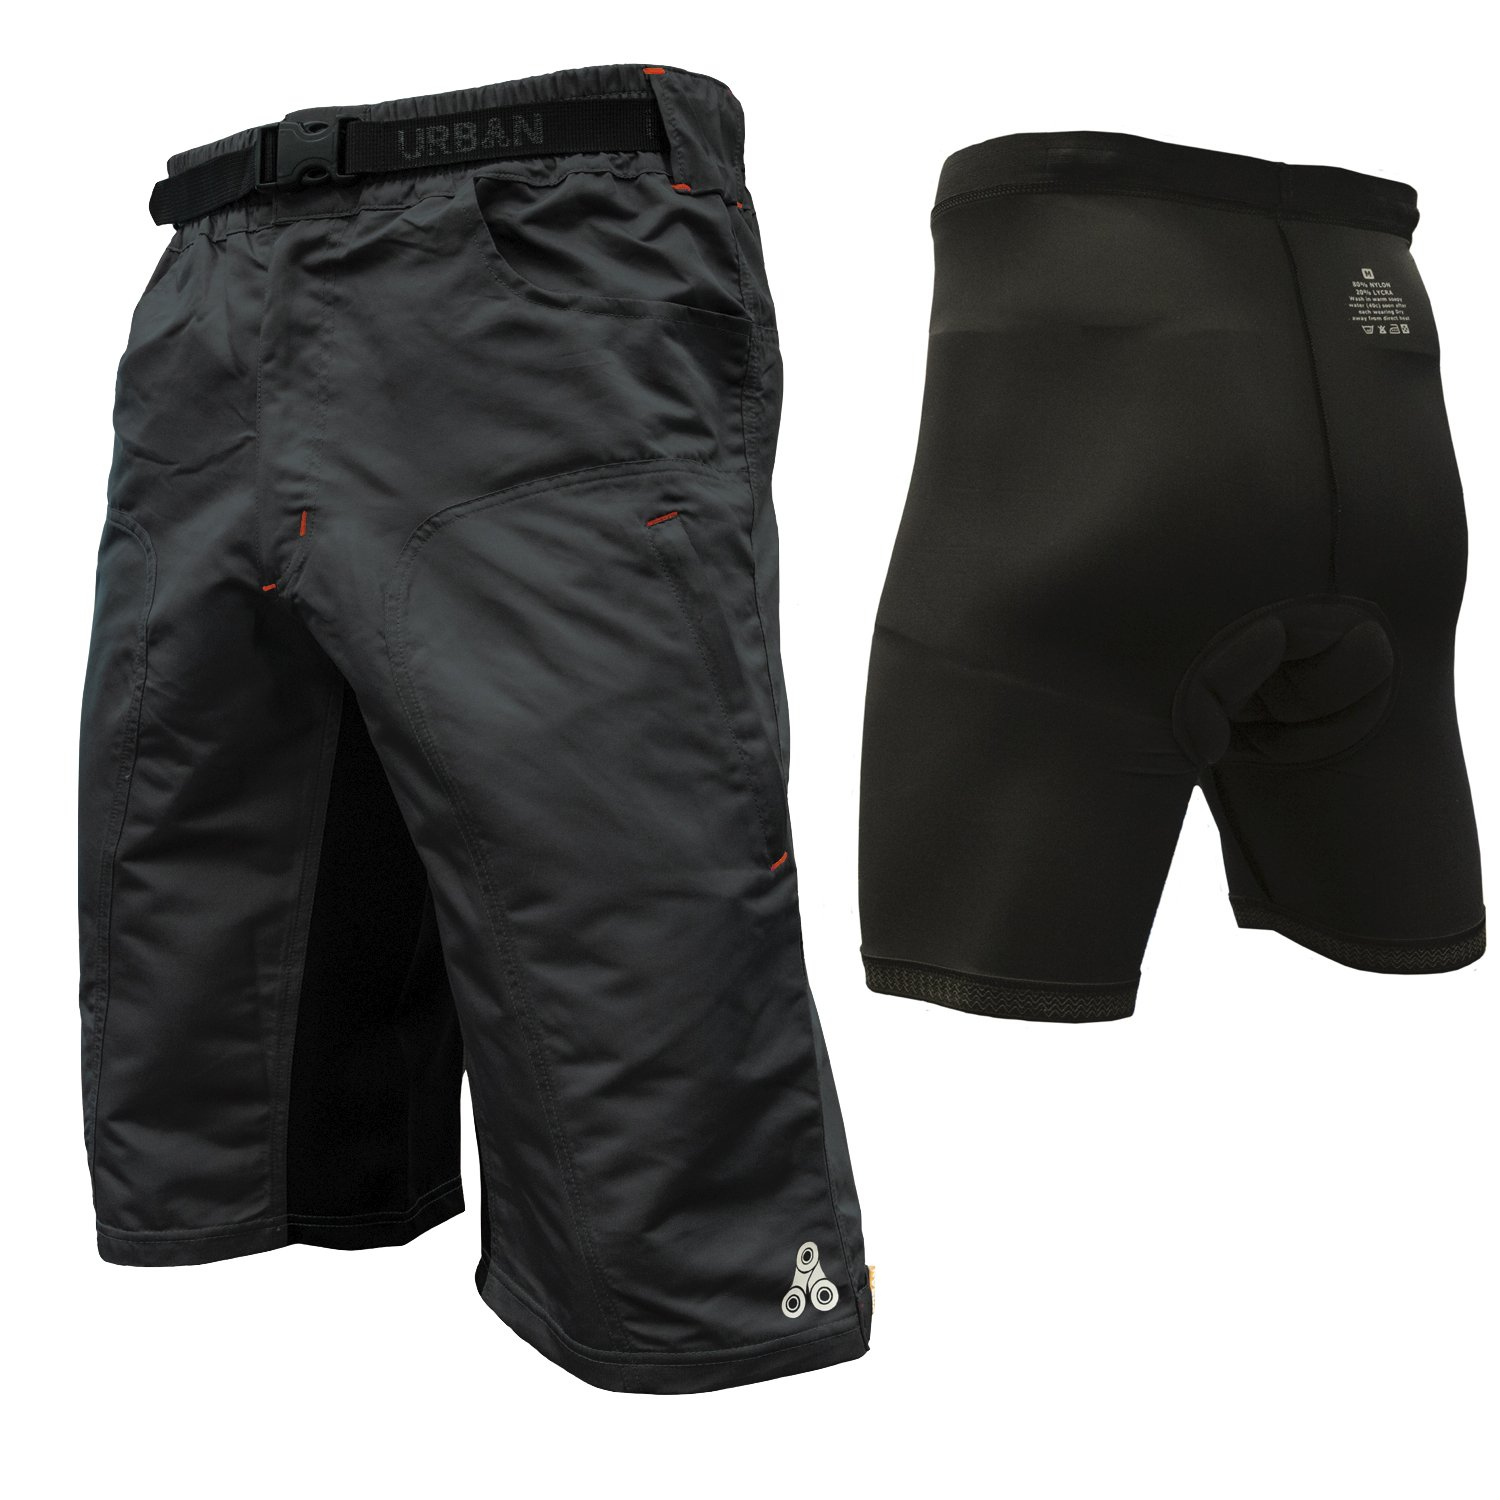 The Enduro - Men's MTB Off Road Cycling Shorts with ClickFast Padded Undershorts with Coolmax Technology (X-Large, Black) by Urban Cycling Apparel